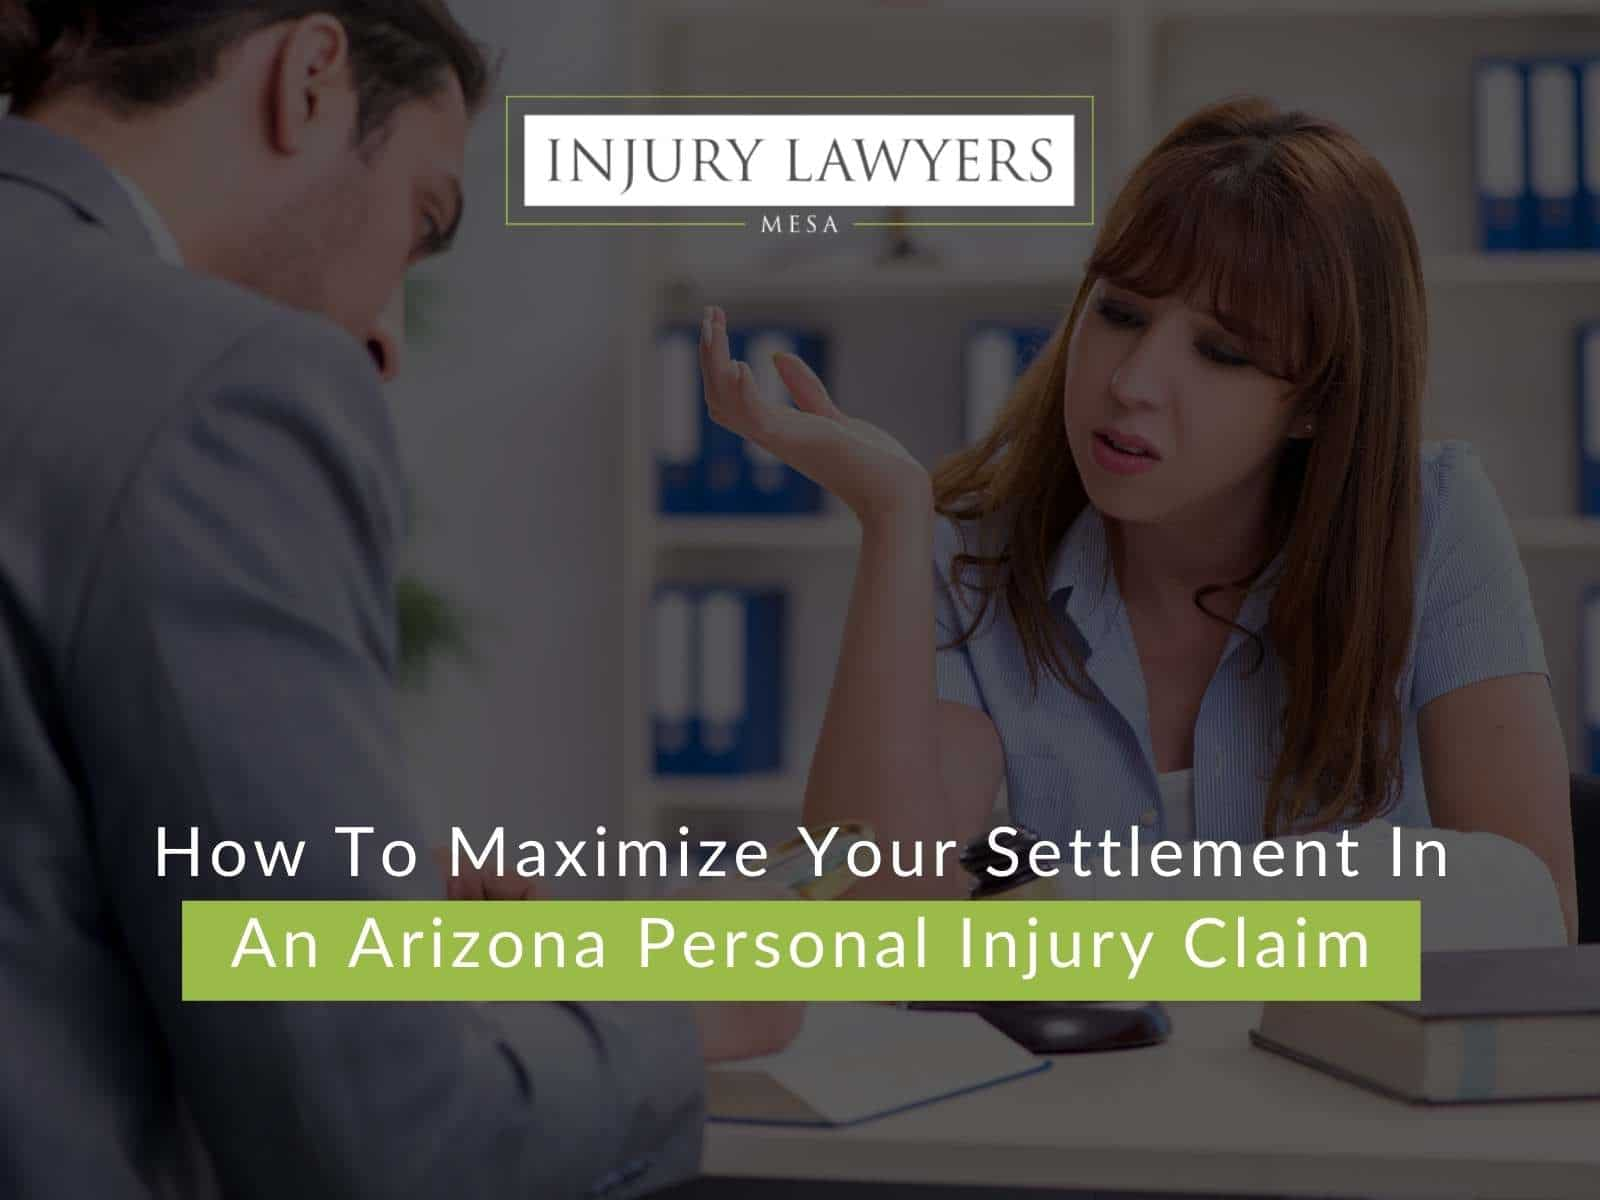 How To Maximize Your Settlement In An Arizona Personal Injury Claim